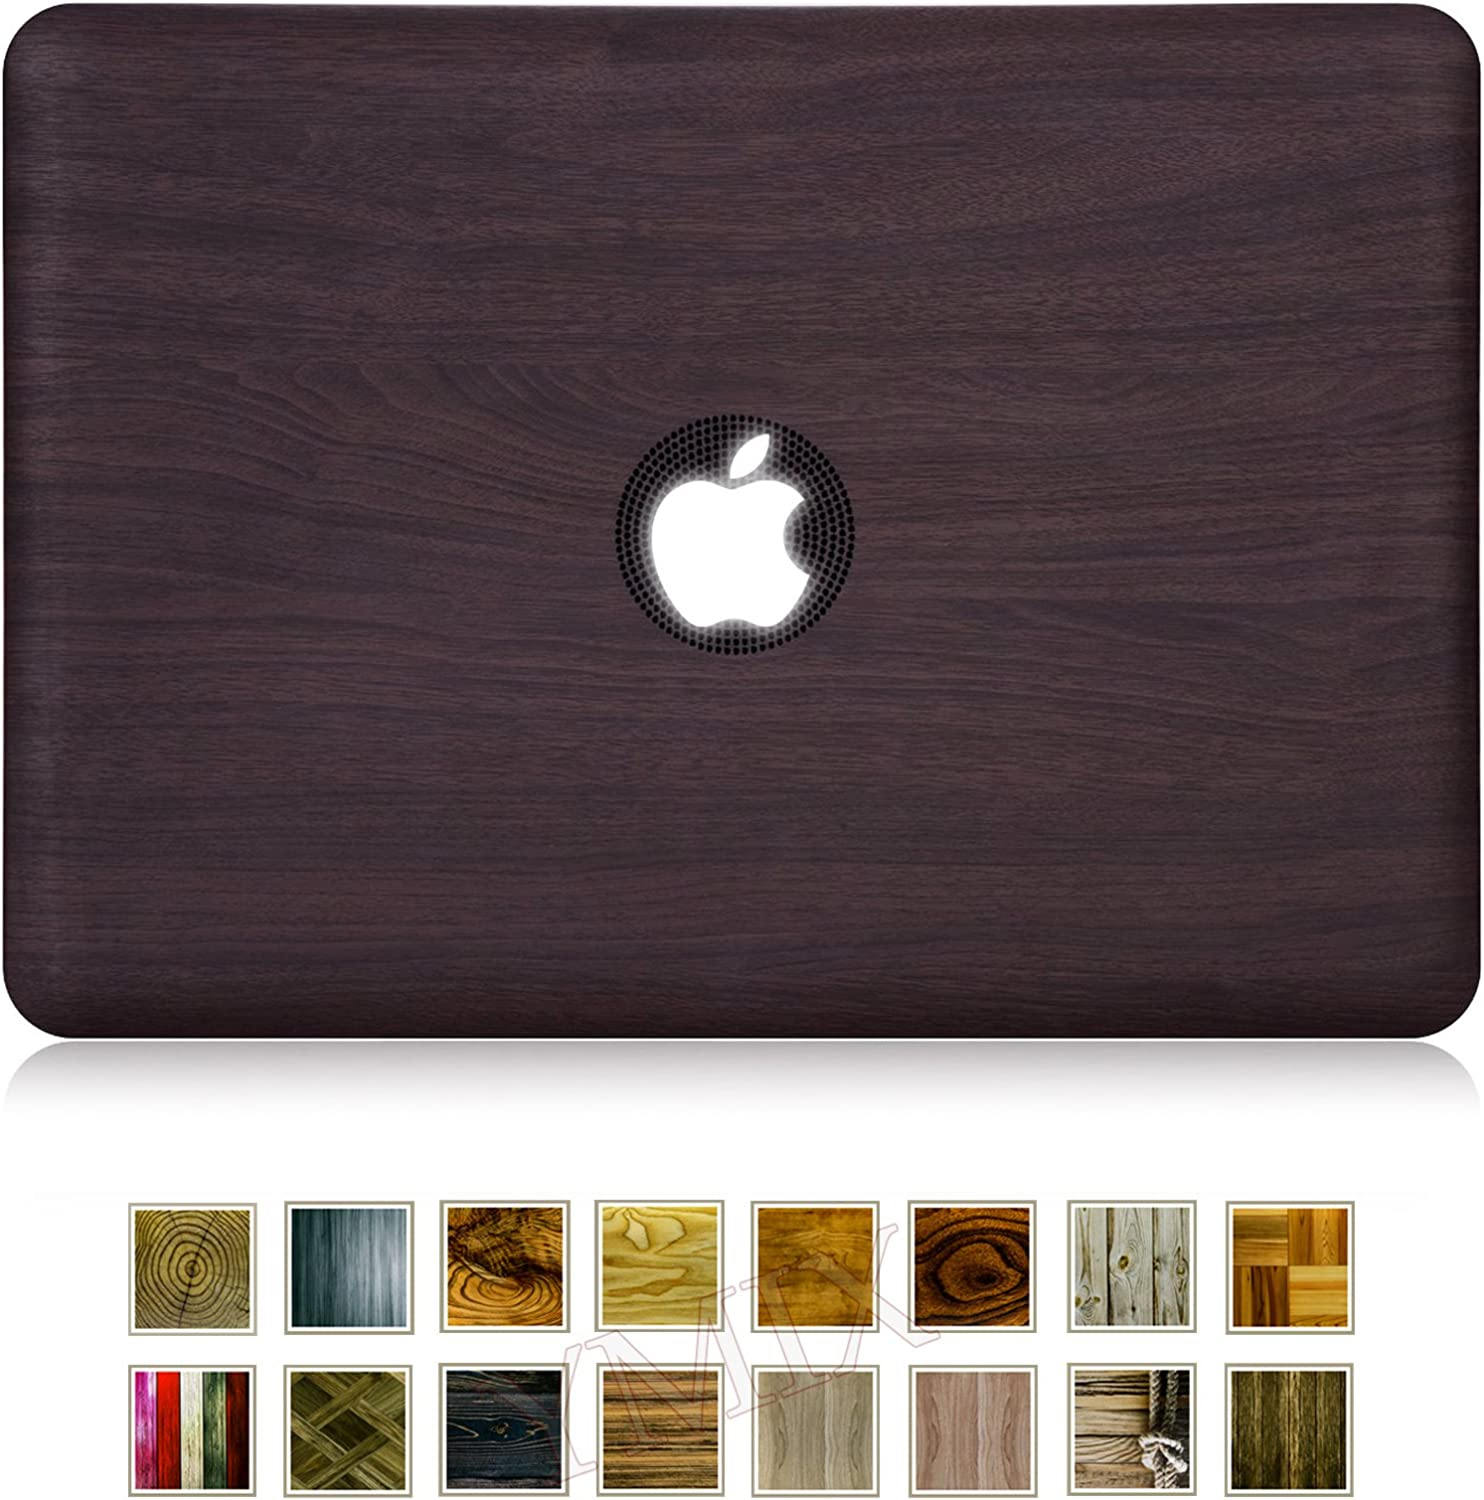 Funut Compatible with MacBook 12 inch Case 2015-2017 Release A1534/A1931, Cute Hard Shell Protective Case, Smooth Matte Finish Protective Cover for MacBook 12 Inch Case A1534/A1931(Wood Grain)